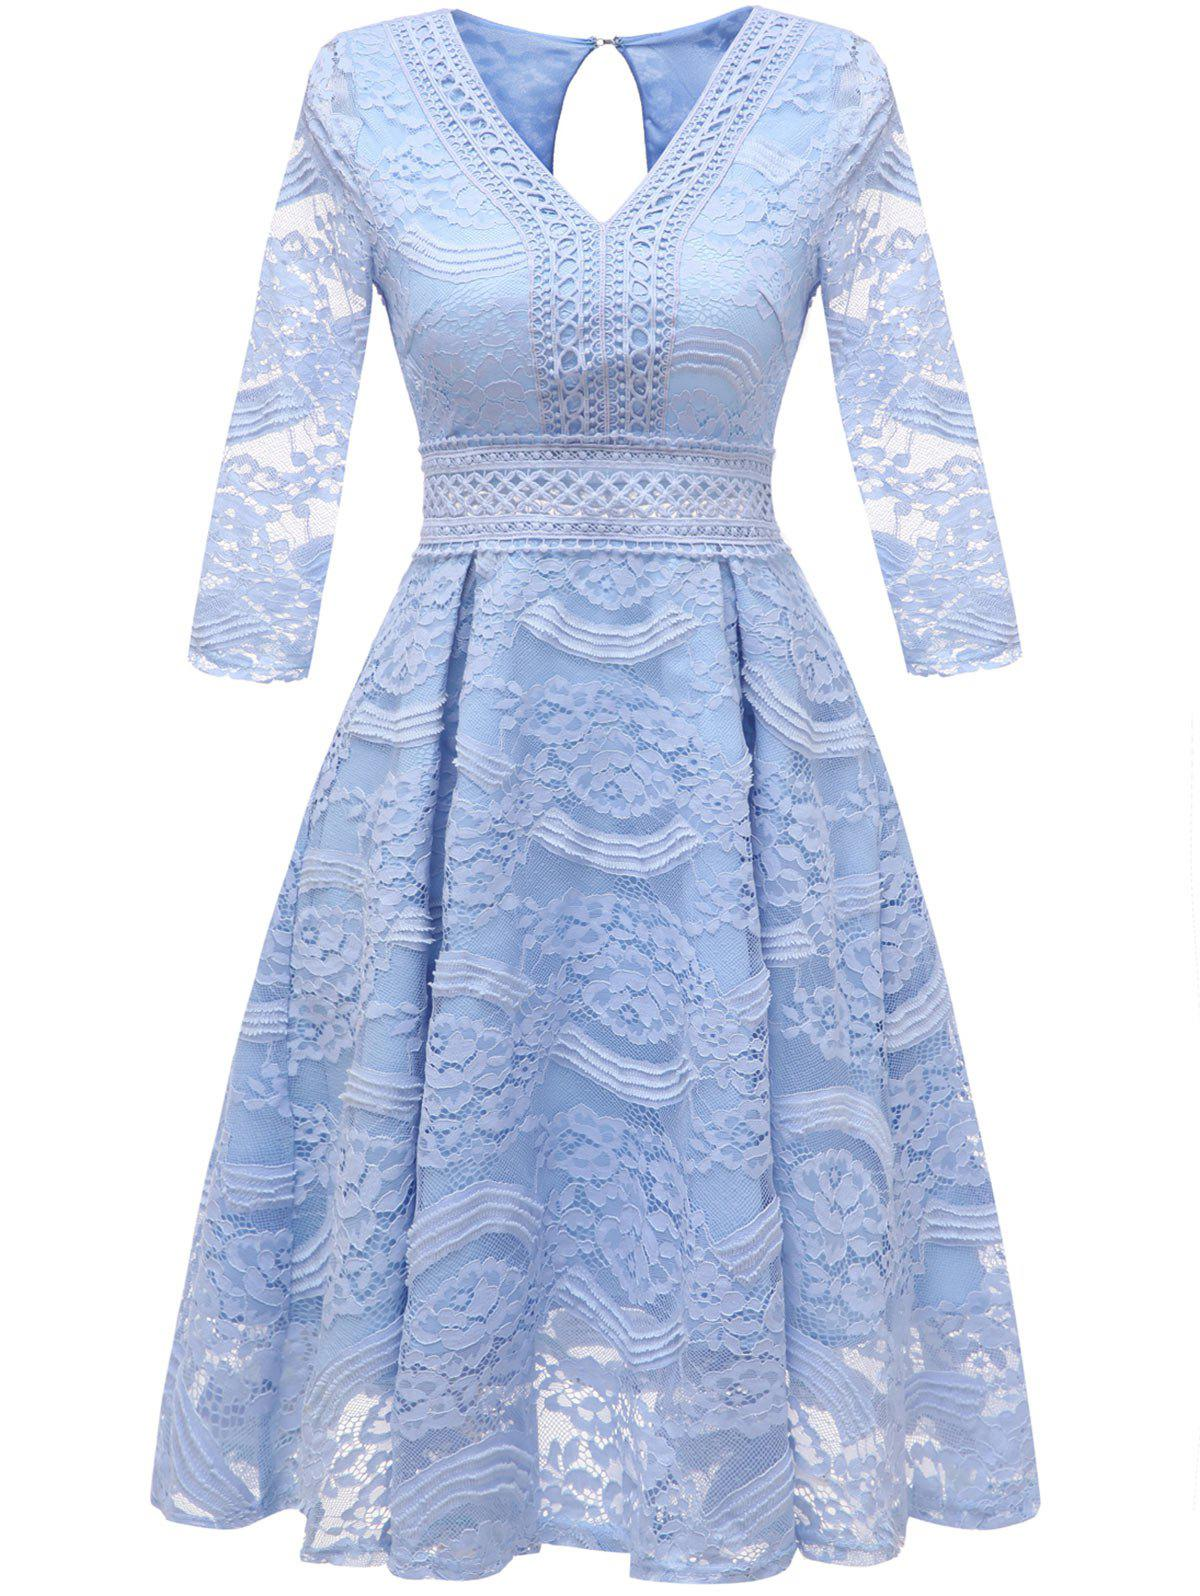 Best V Neck Lace Overlay Dress